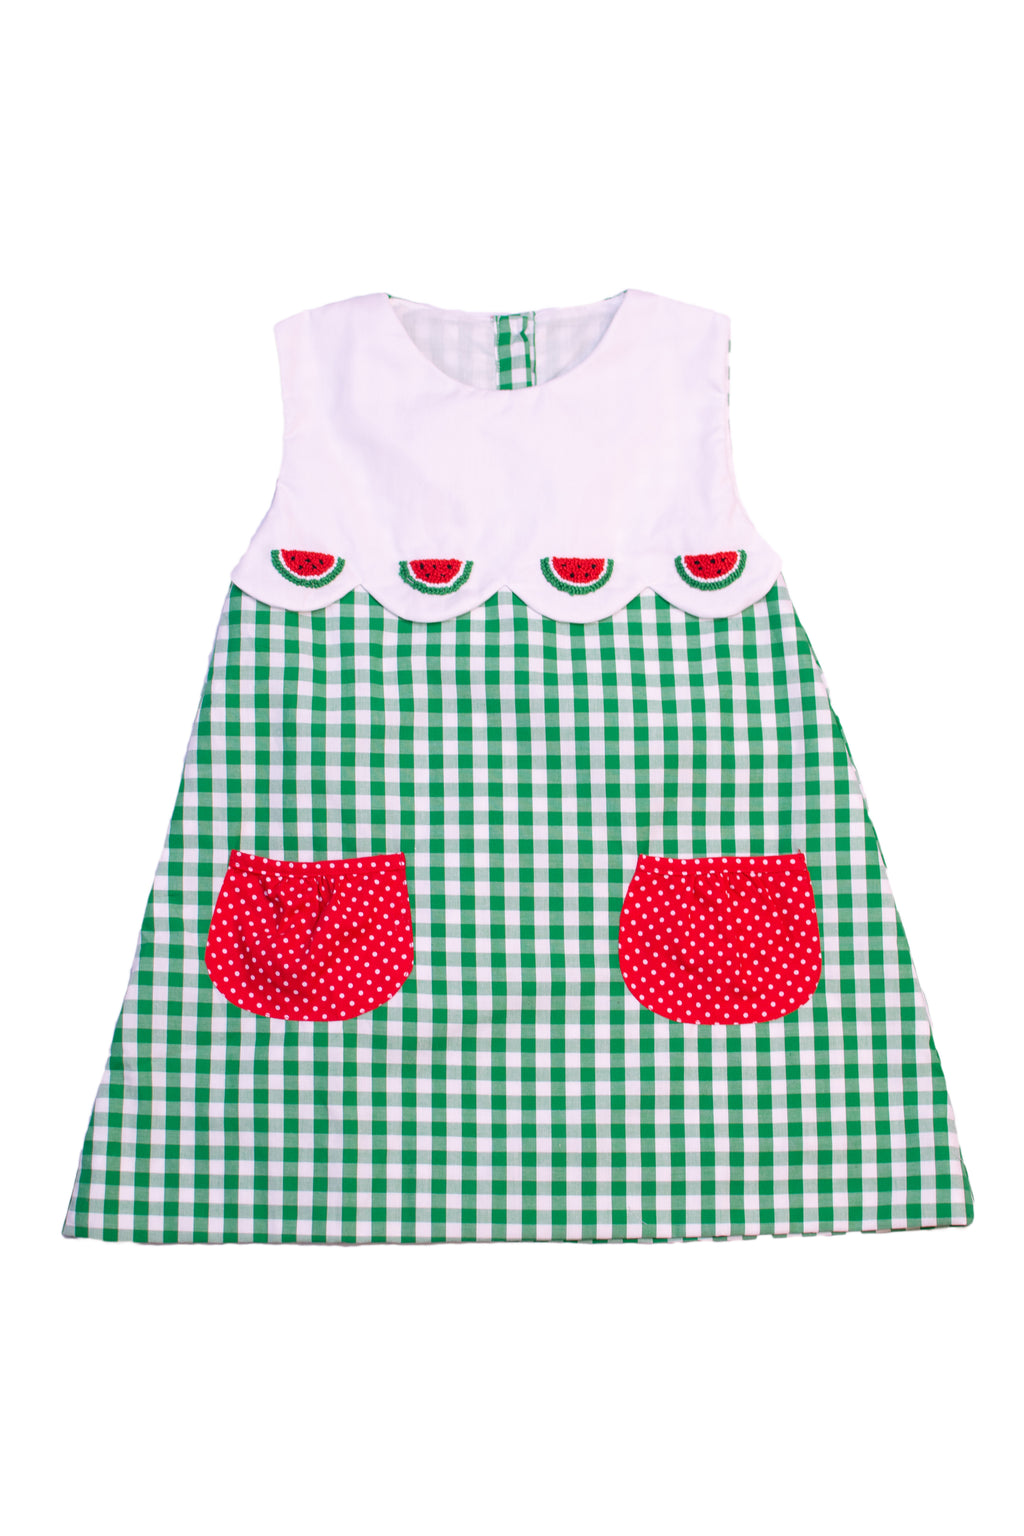 Girls French Knot Watermelon Dress